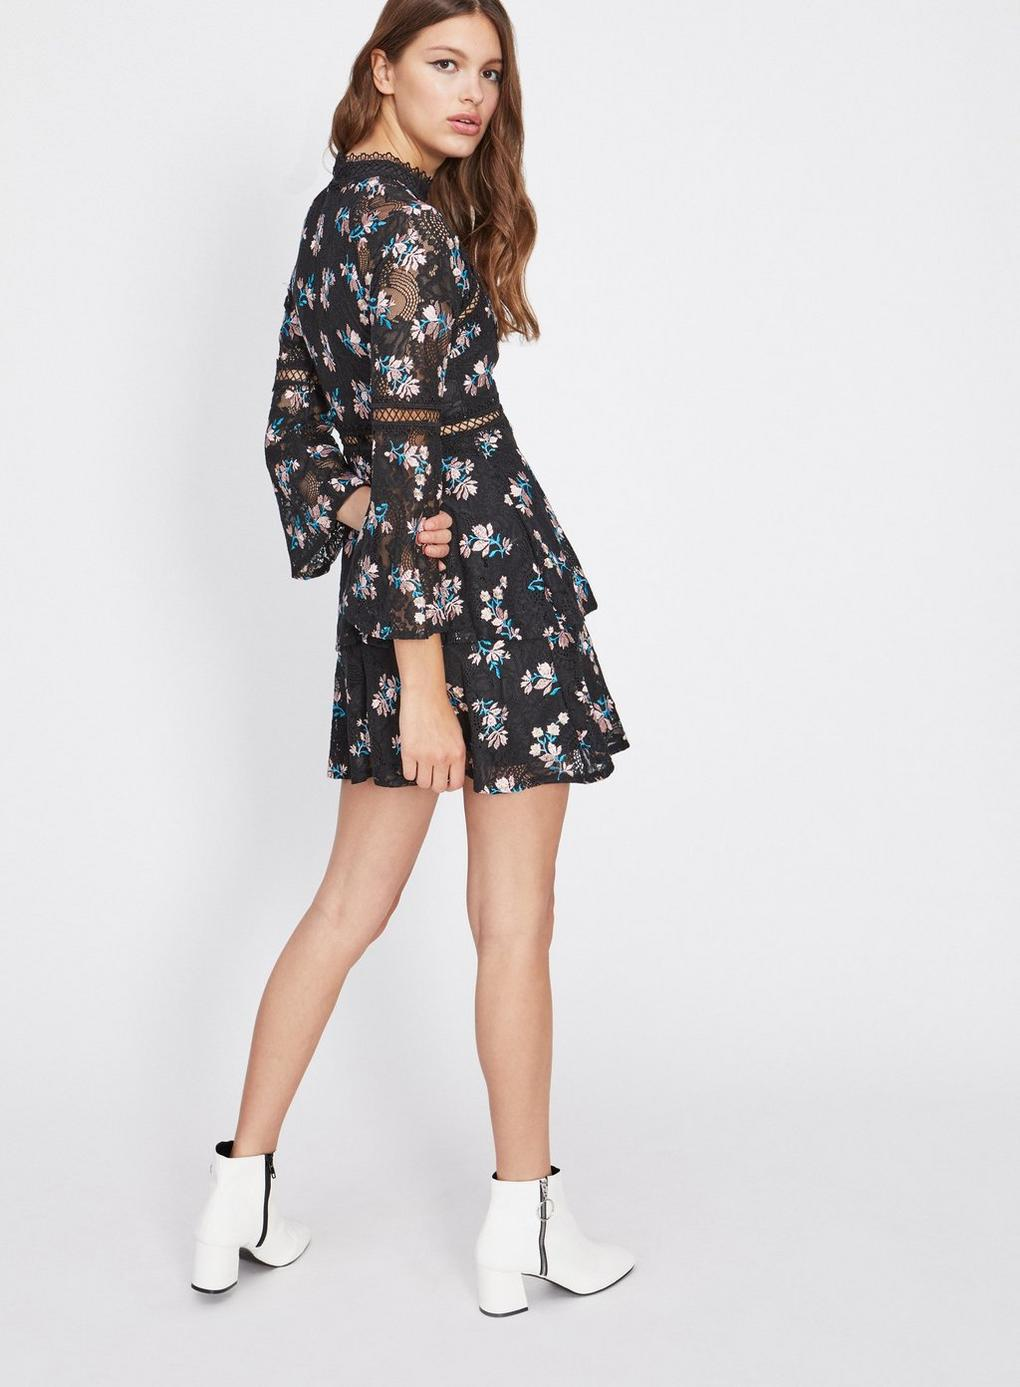 Miss Selfridge - Dolly And Delicious Black Embroidered Insert Dress - Lyst.  View fullscreen 310b4d878